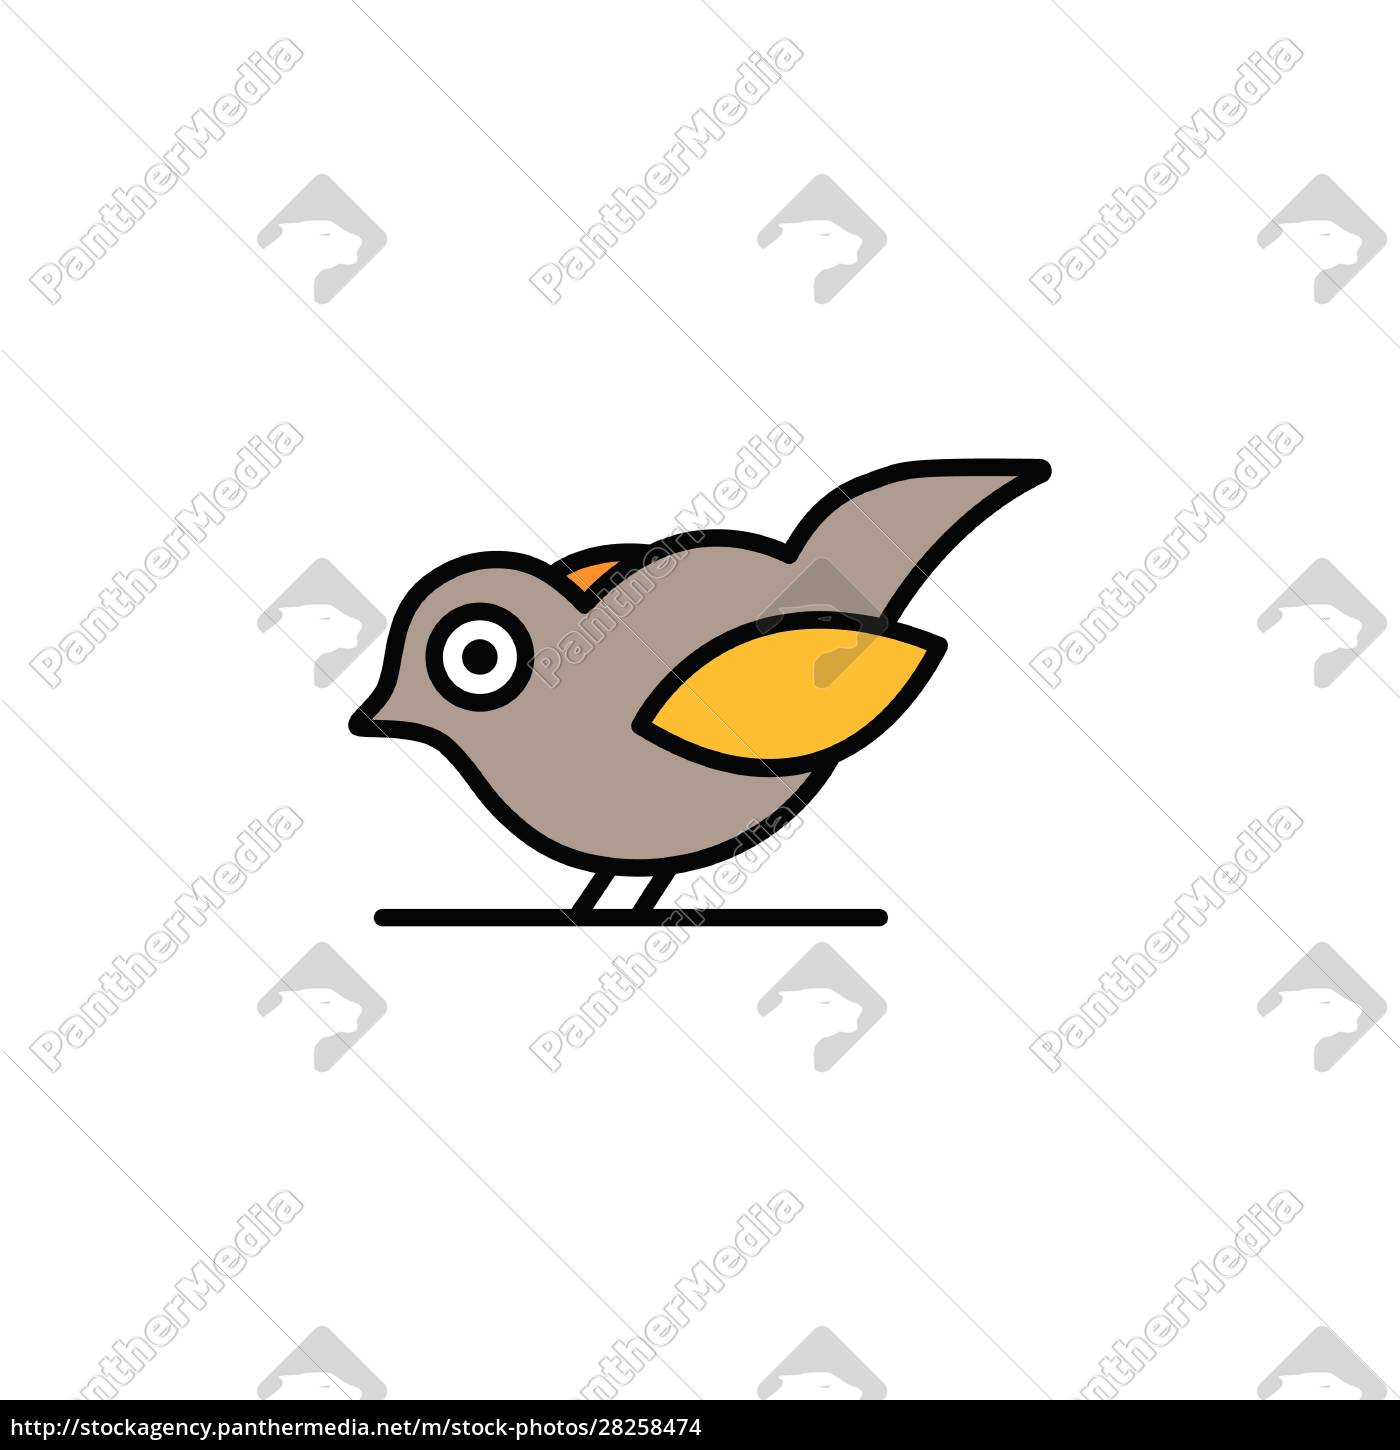 little, bird., filled, color, icon., animal - 28258474